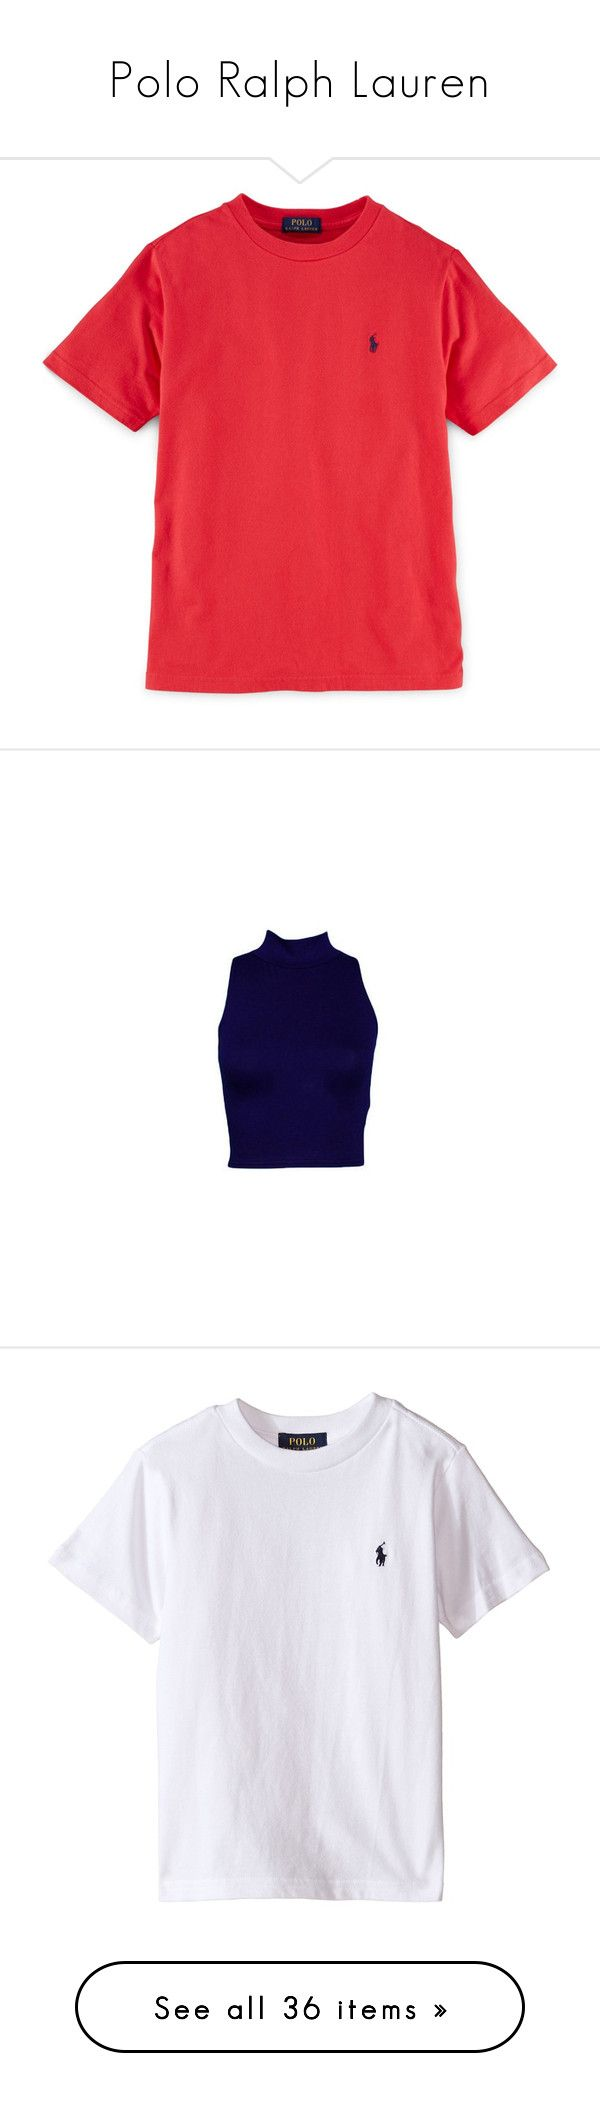 Polo fashion pas cher polo ralph lauren femme france polo de marque -  Polo Ralph Lauren By Saucinliya Liked On Polyvore Featuring Men S Fashion Men S